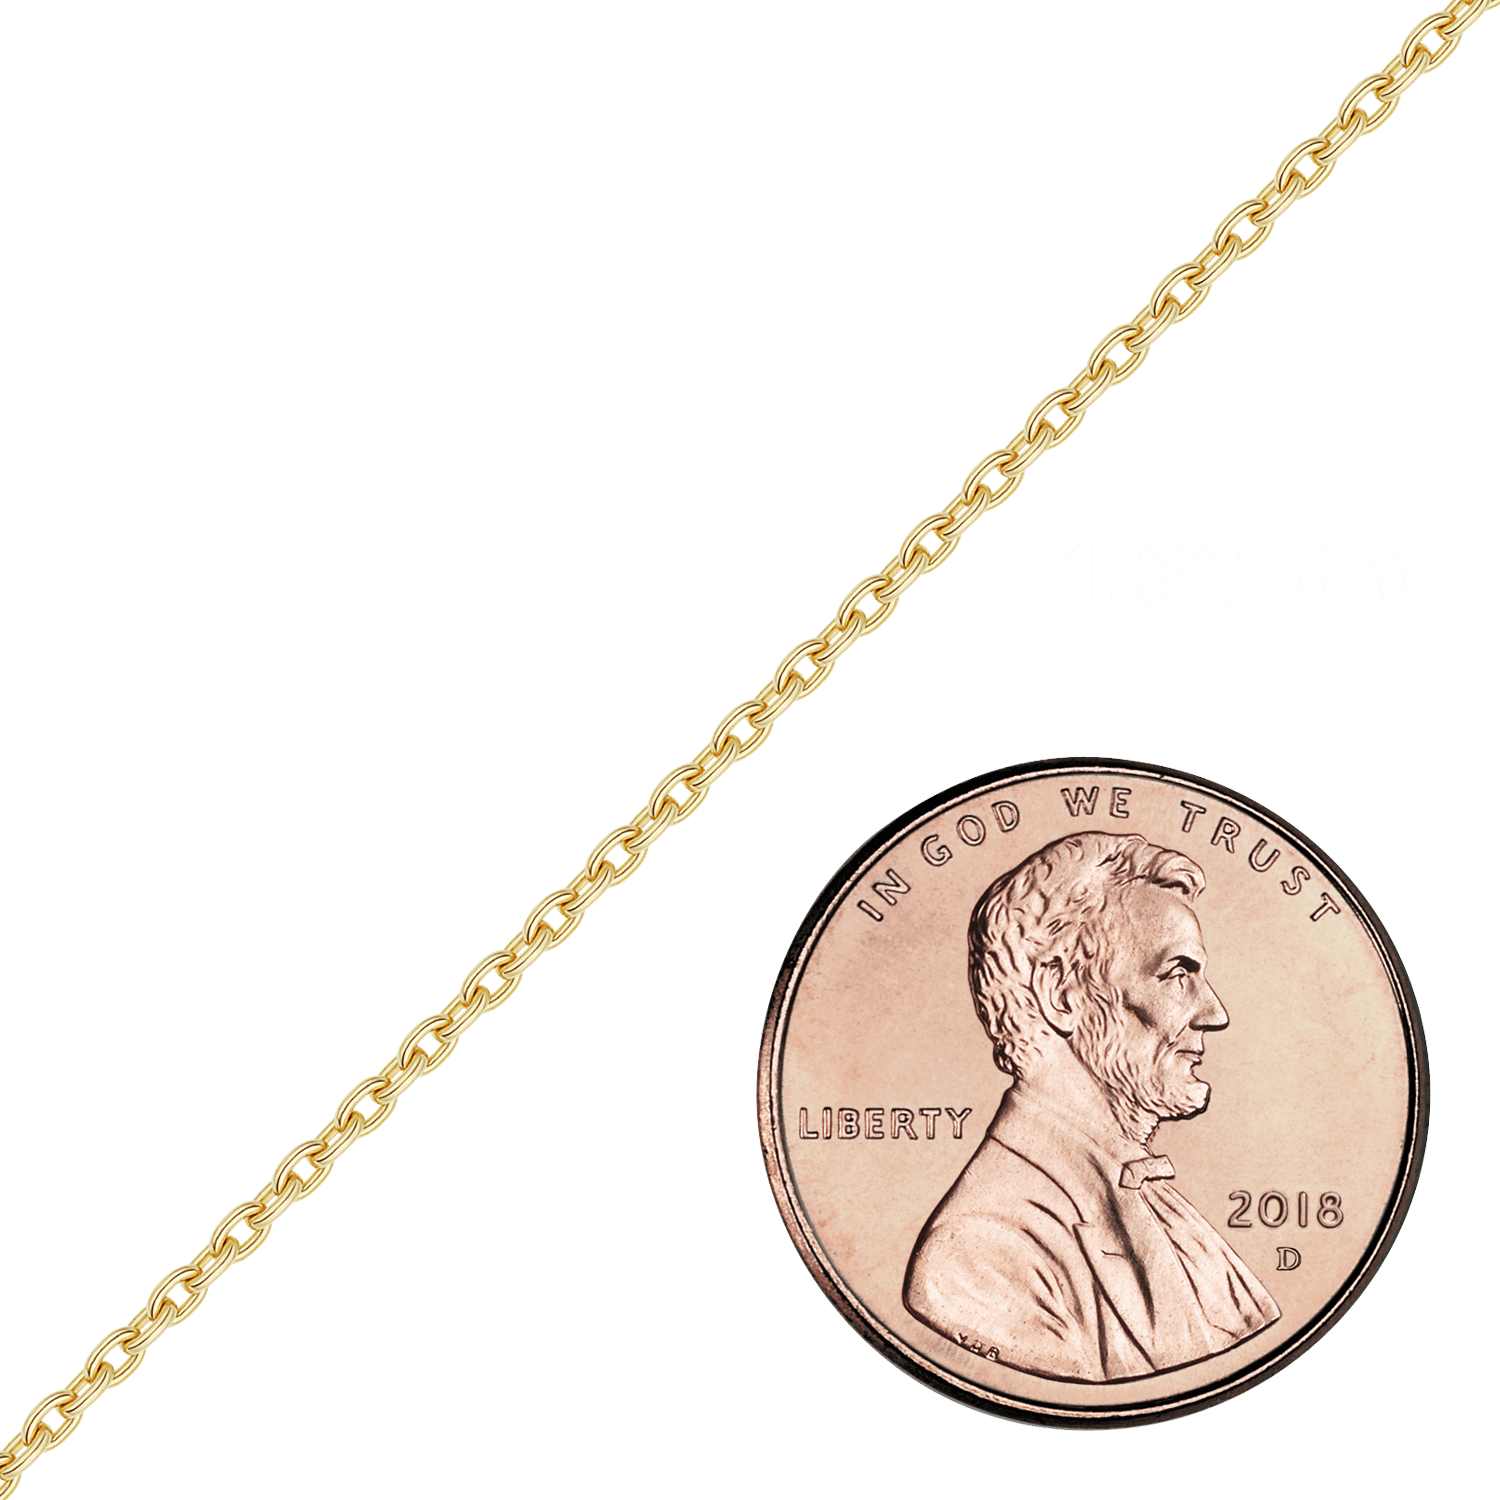 Bulk / Spooled Elongated Cable Chain in Gold-Filled (1.3mm)